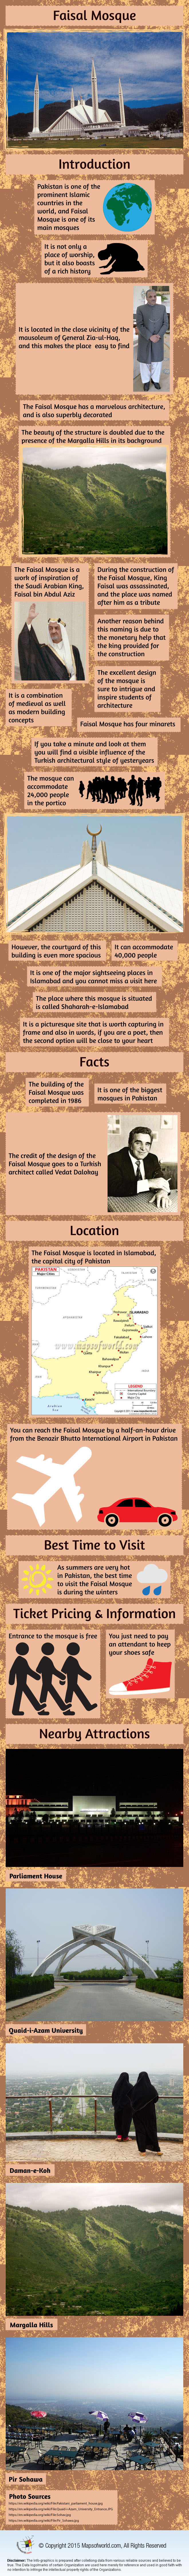 Faisal Mosque Infographic